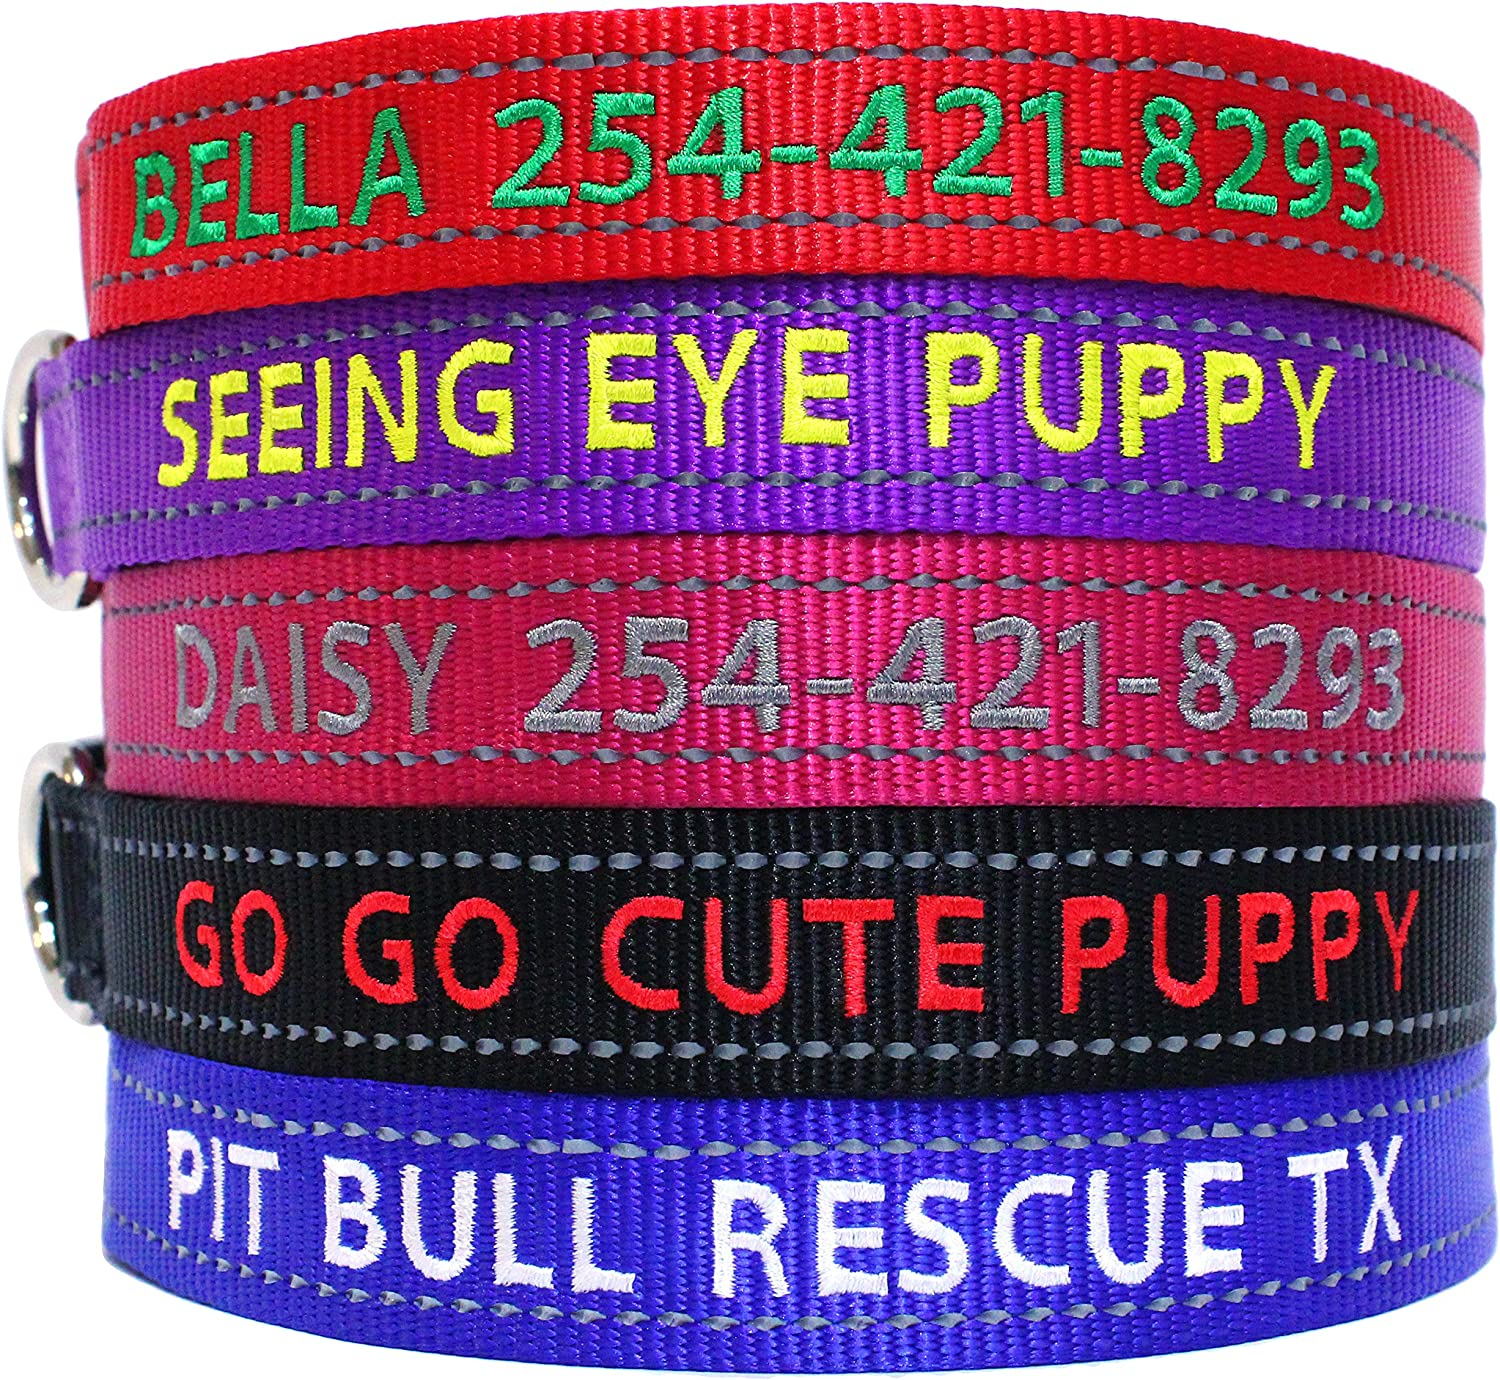 Go Cute Puppy- free shipping Reflective Personalized Dog E Collars - Custom outlet